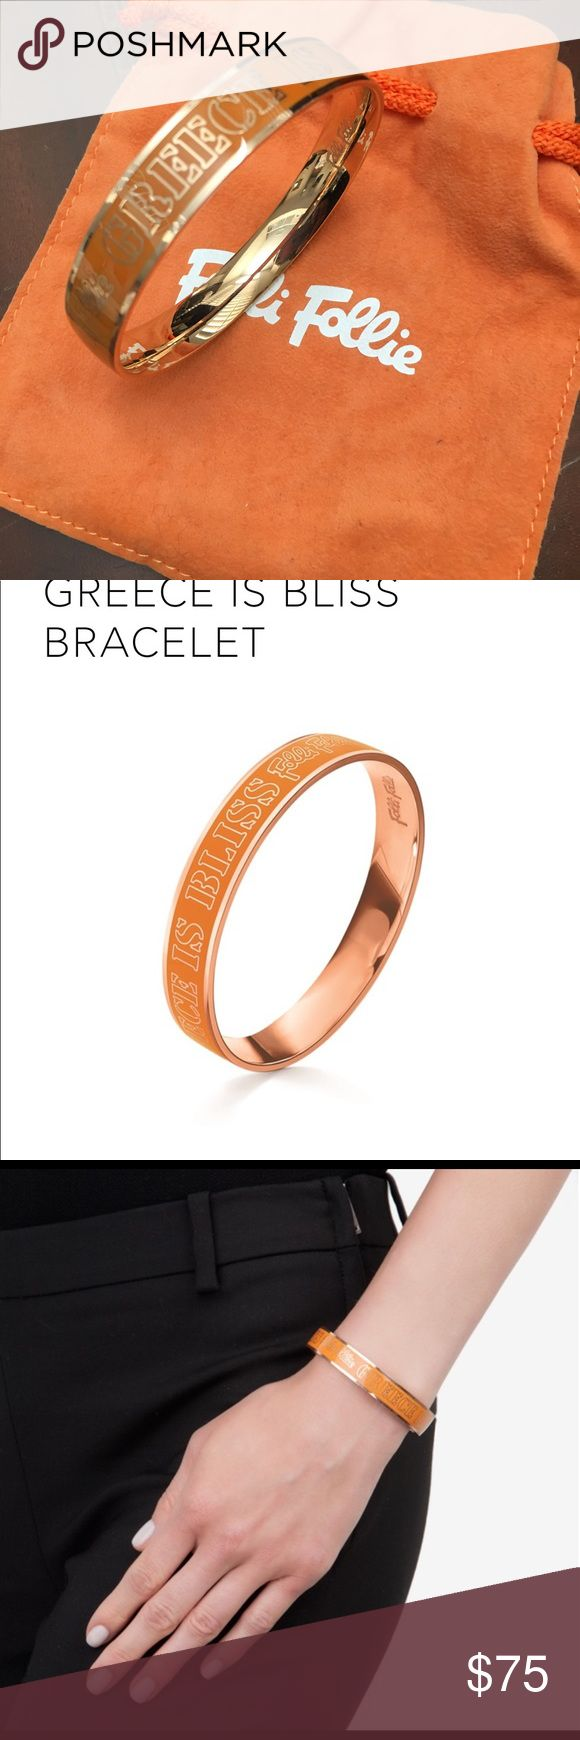 """Folli Follie collector's """"GREECE IS BLISS"""" bangle This is an amazing early piece from the Folli Follie """"GREECE IS BLISS"""" collection. It is in the original orange & rose gold color. The rose gold plating is thick and has not changed color. You can't find them anymore. This one is in unused condition. It comes with its original sachet. Folli Follie Jewelry Bracelets"""